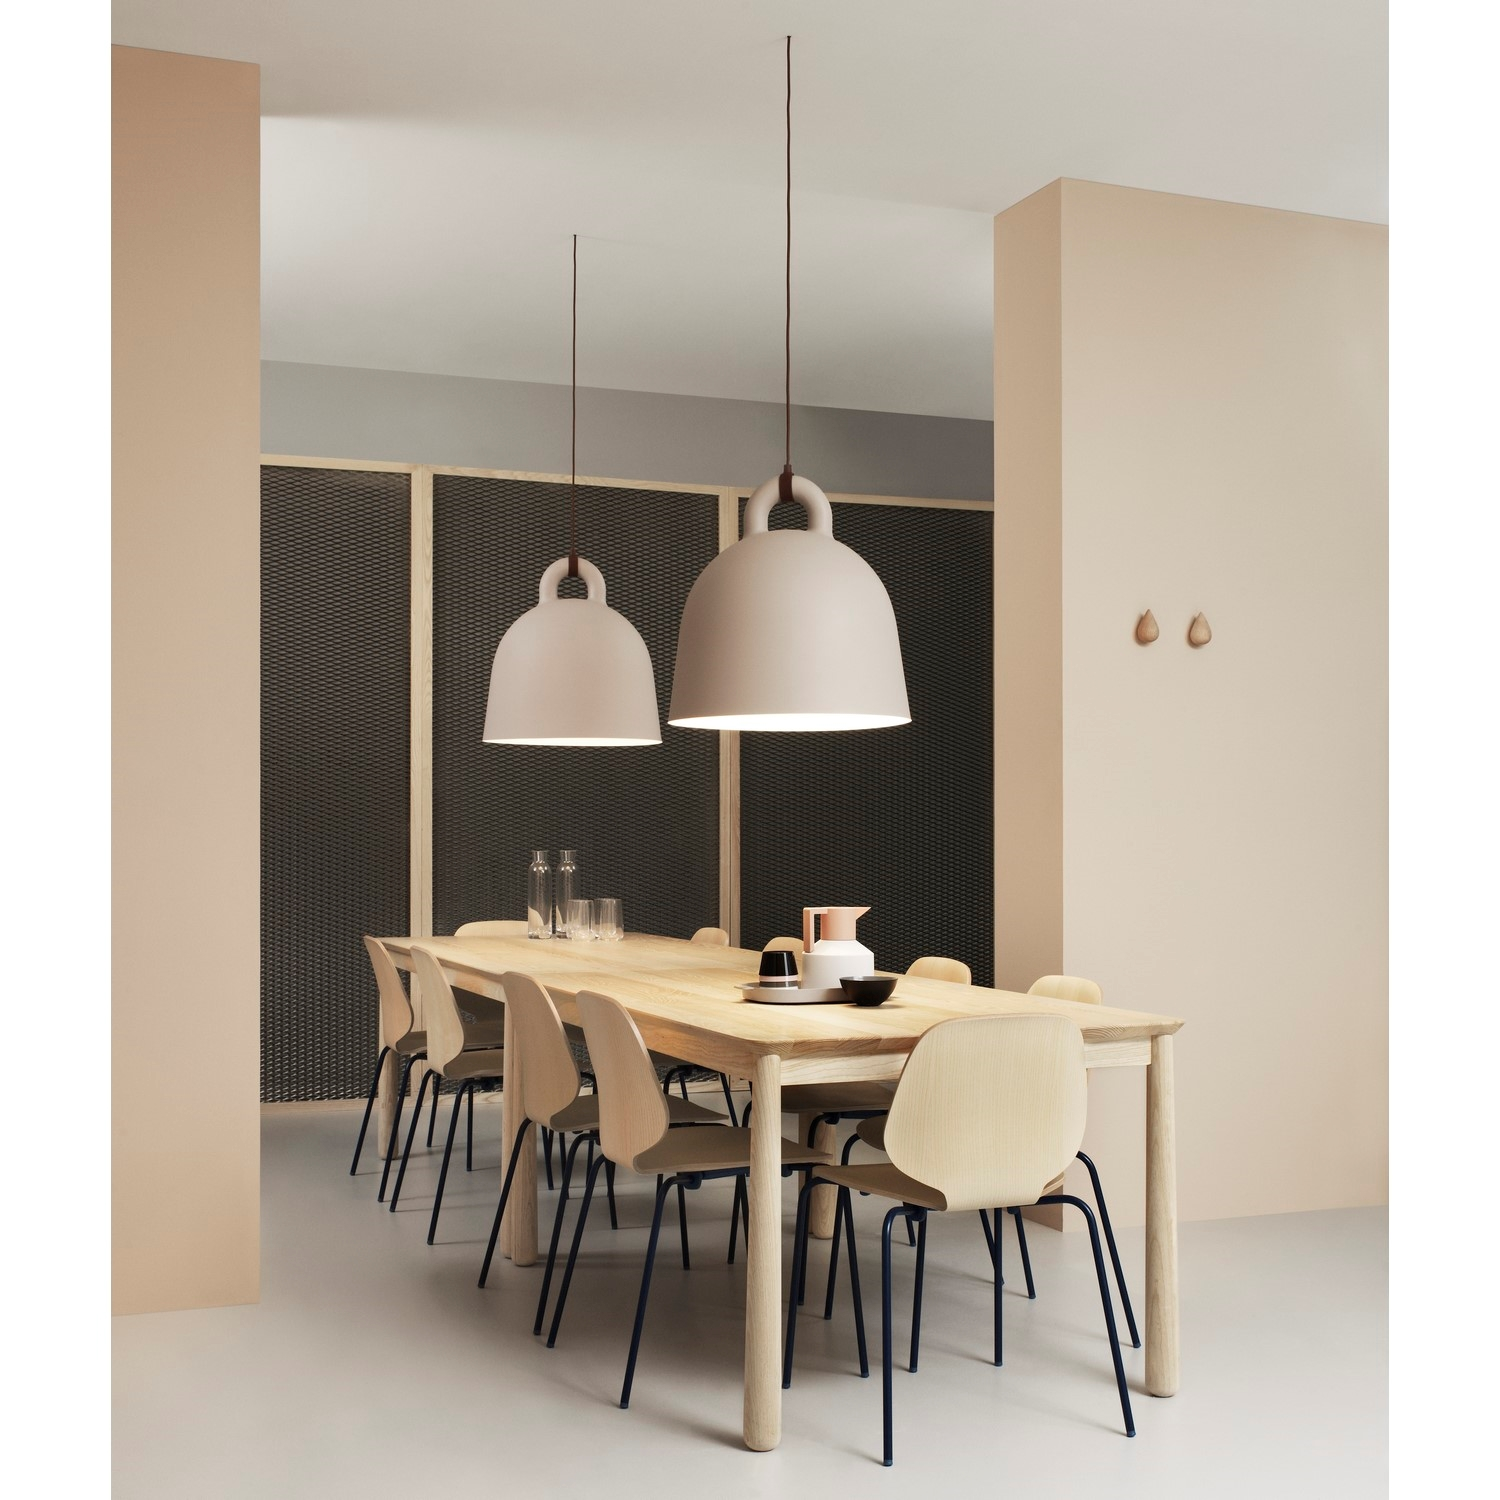 bell lampe fra normann copenhagen f s i 2 farver. Black Bedroom Furniture Sets. Home Design Ideas